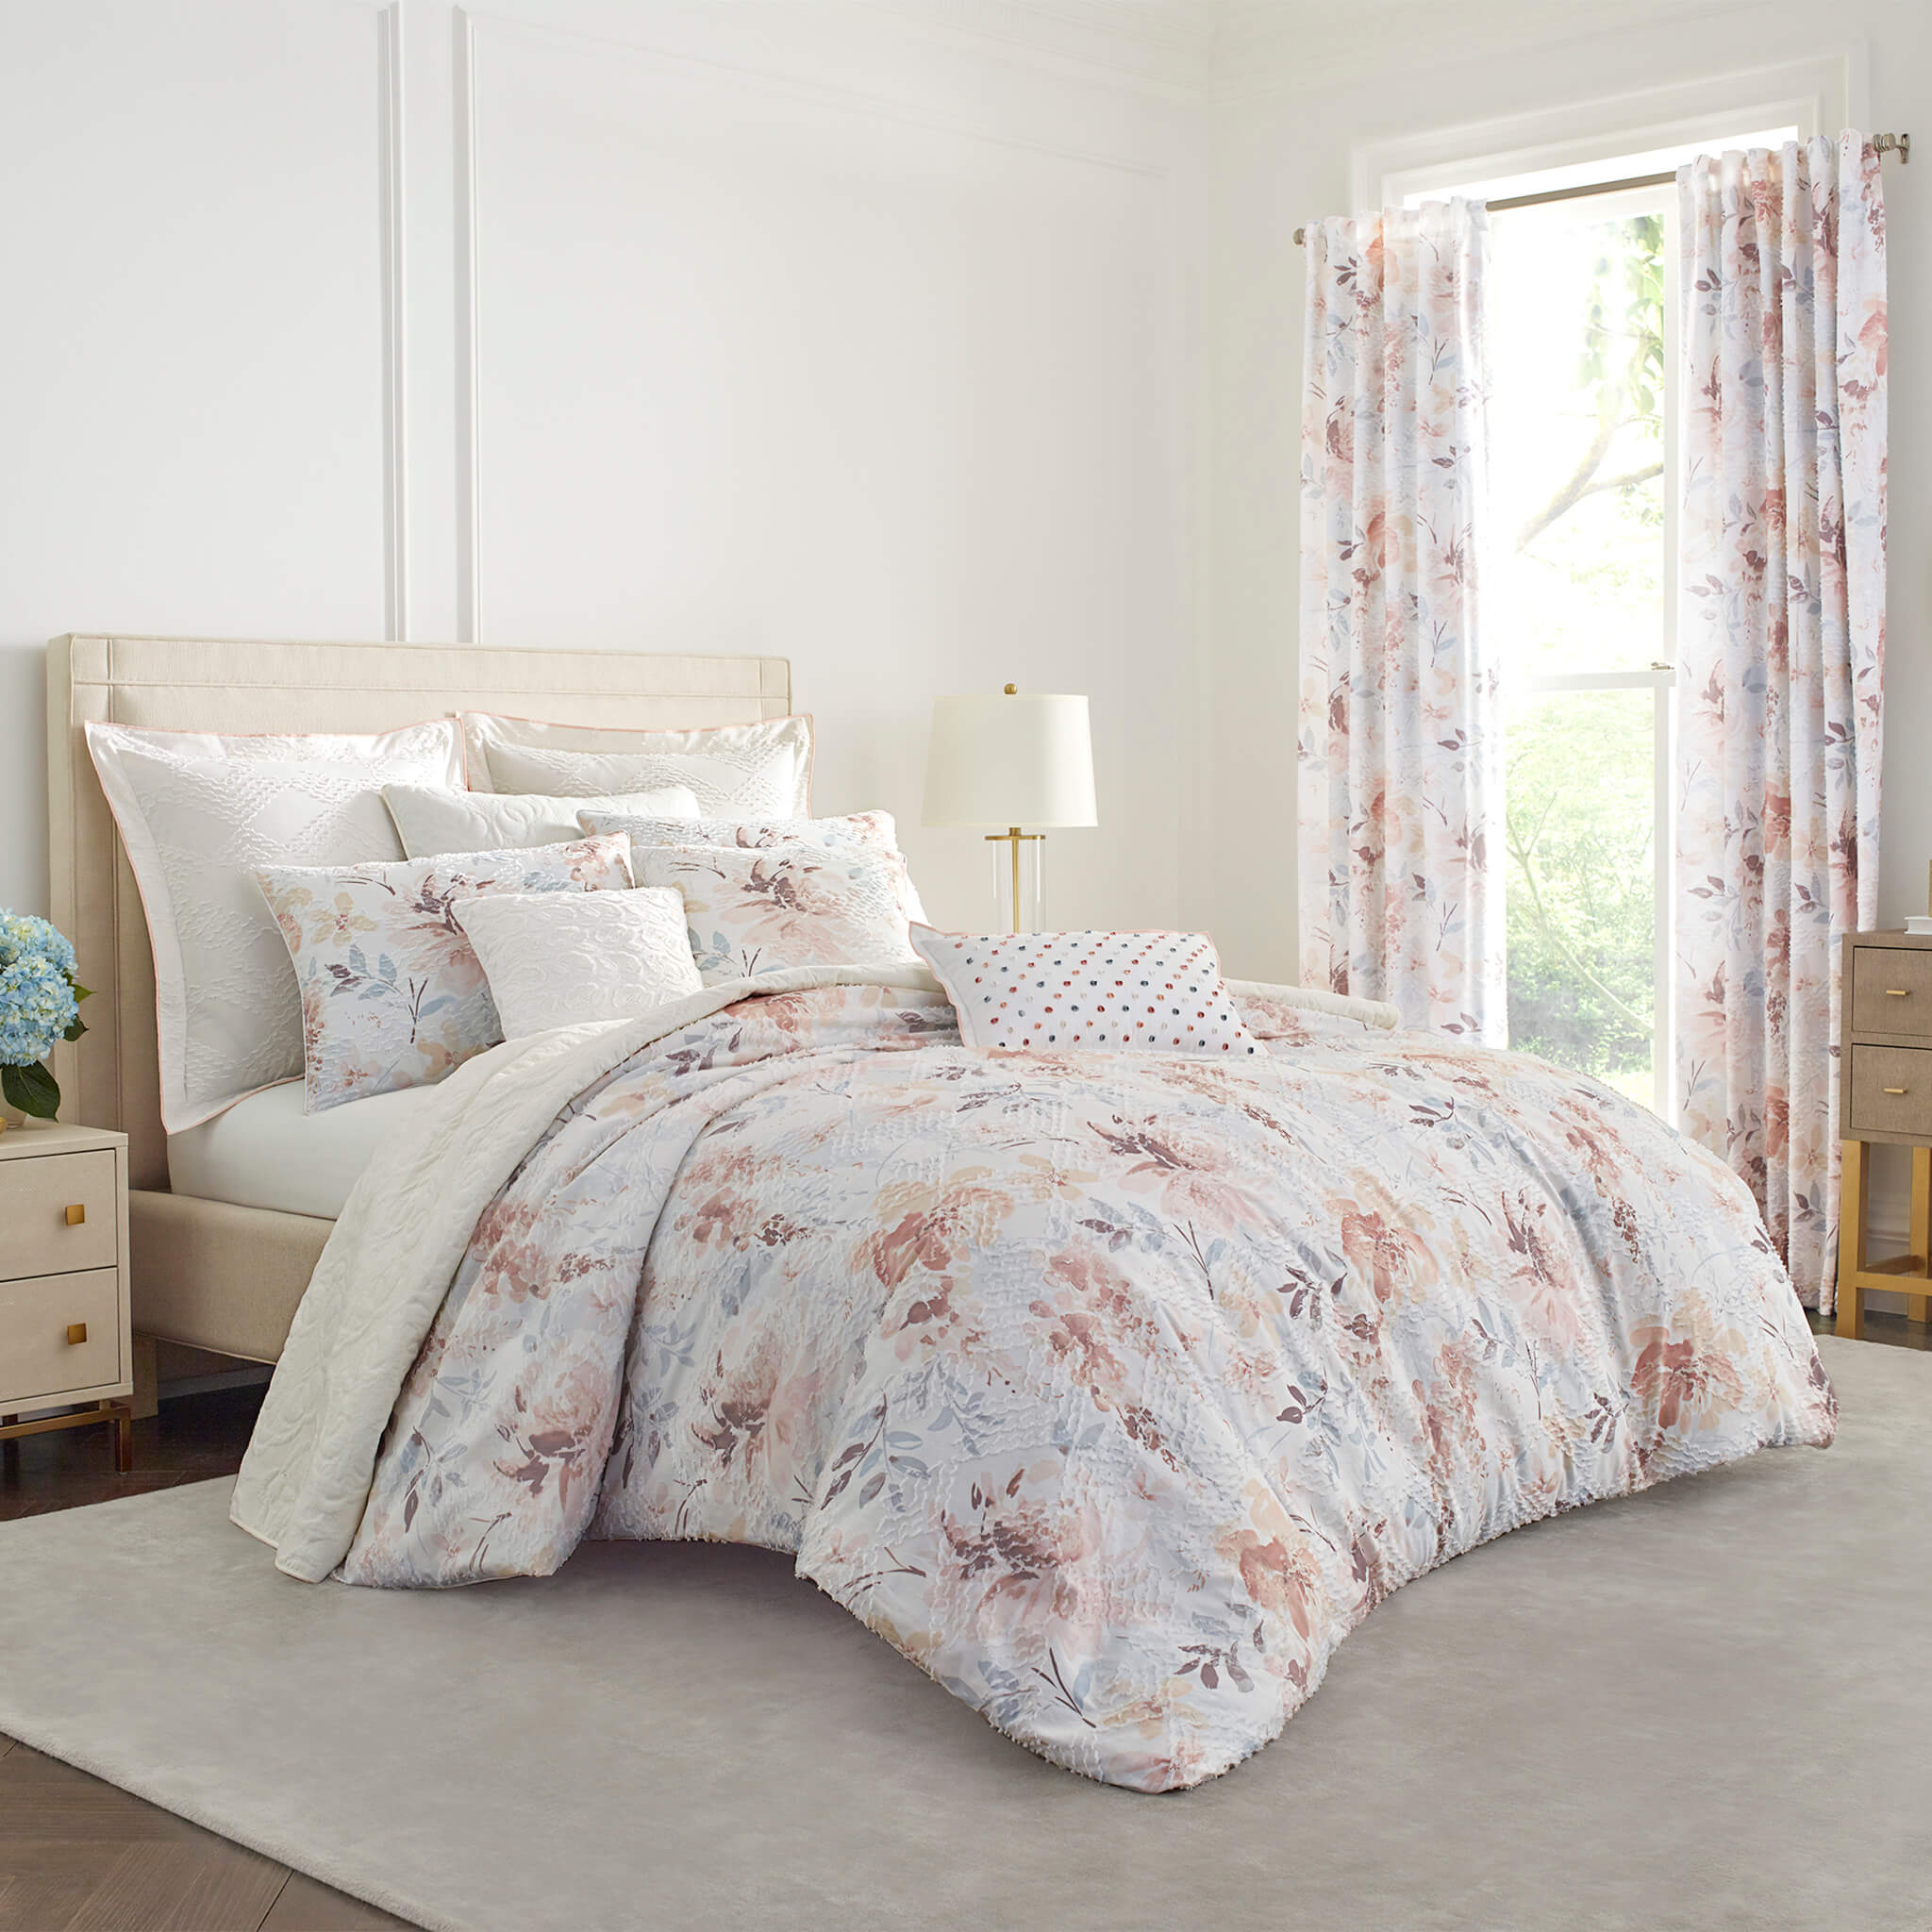 Liana Bedding Bundle